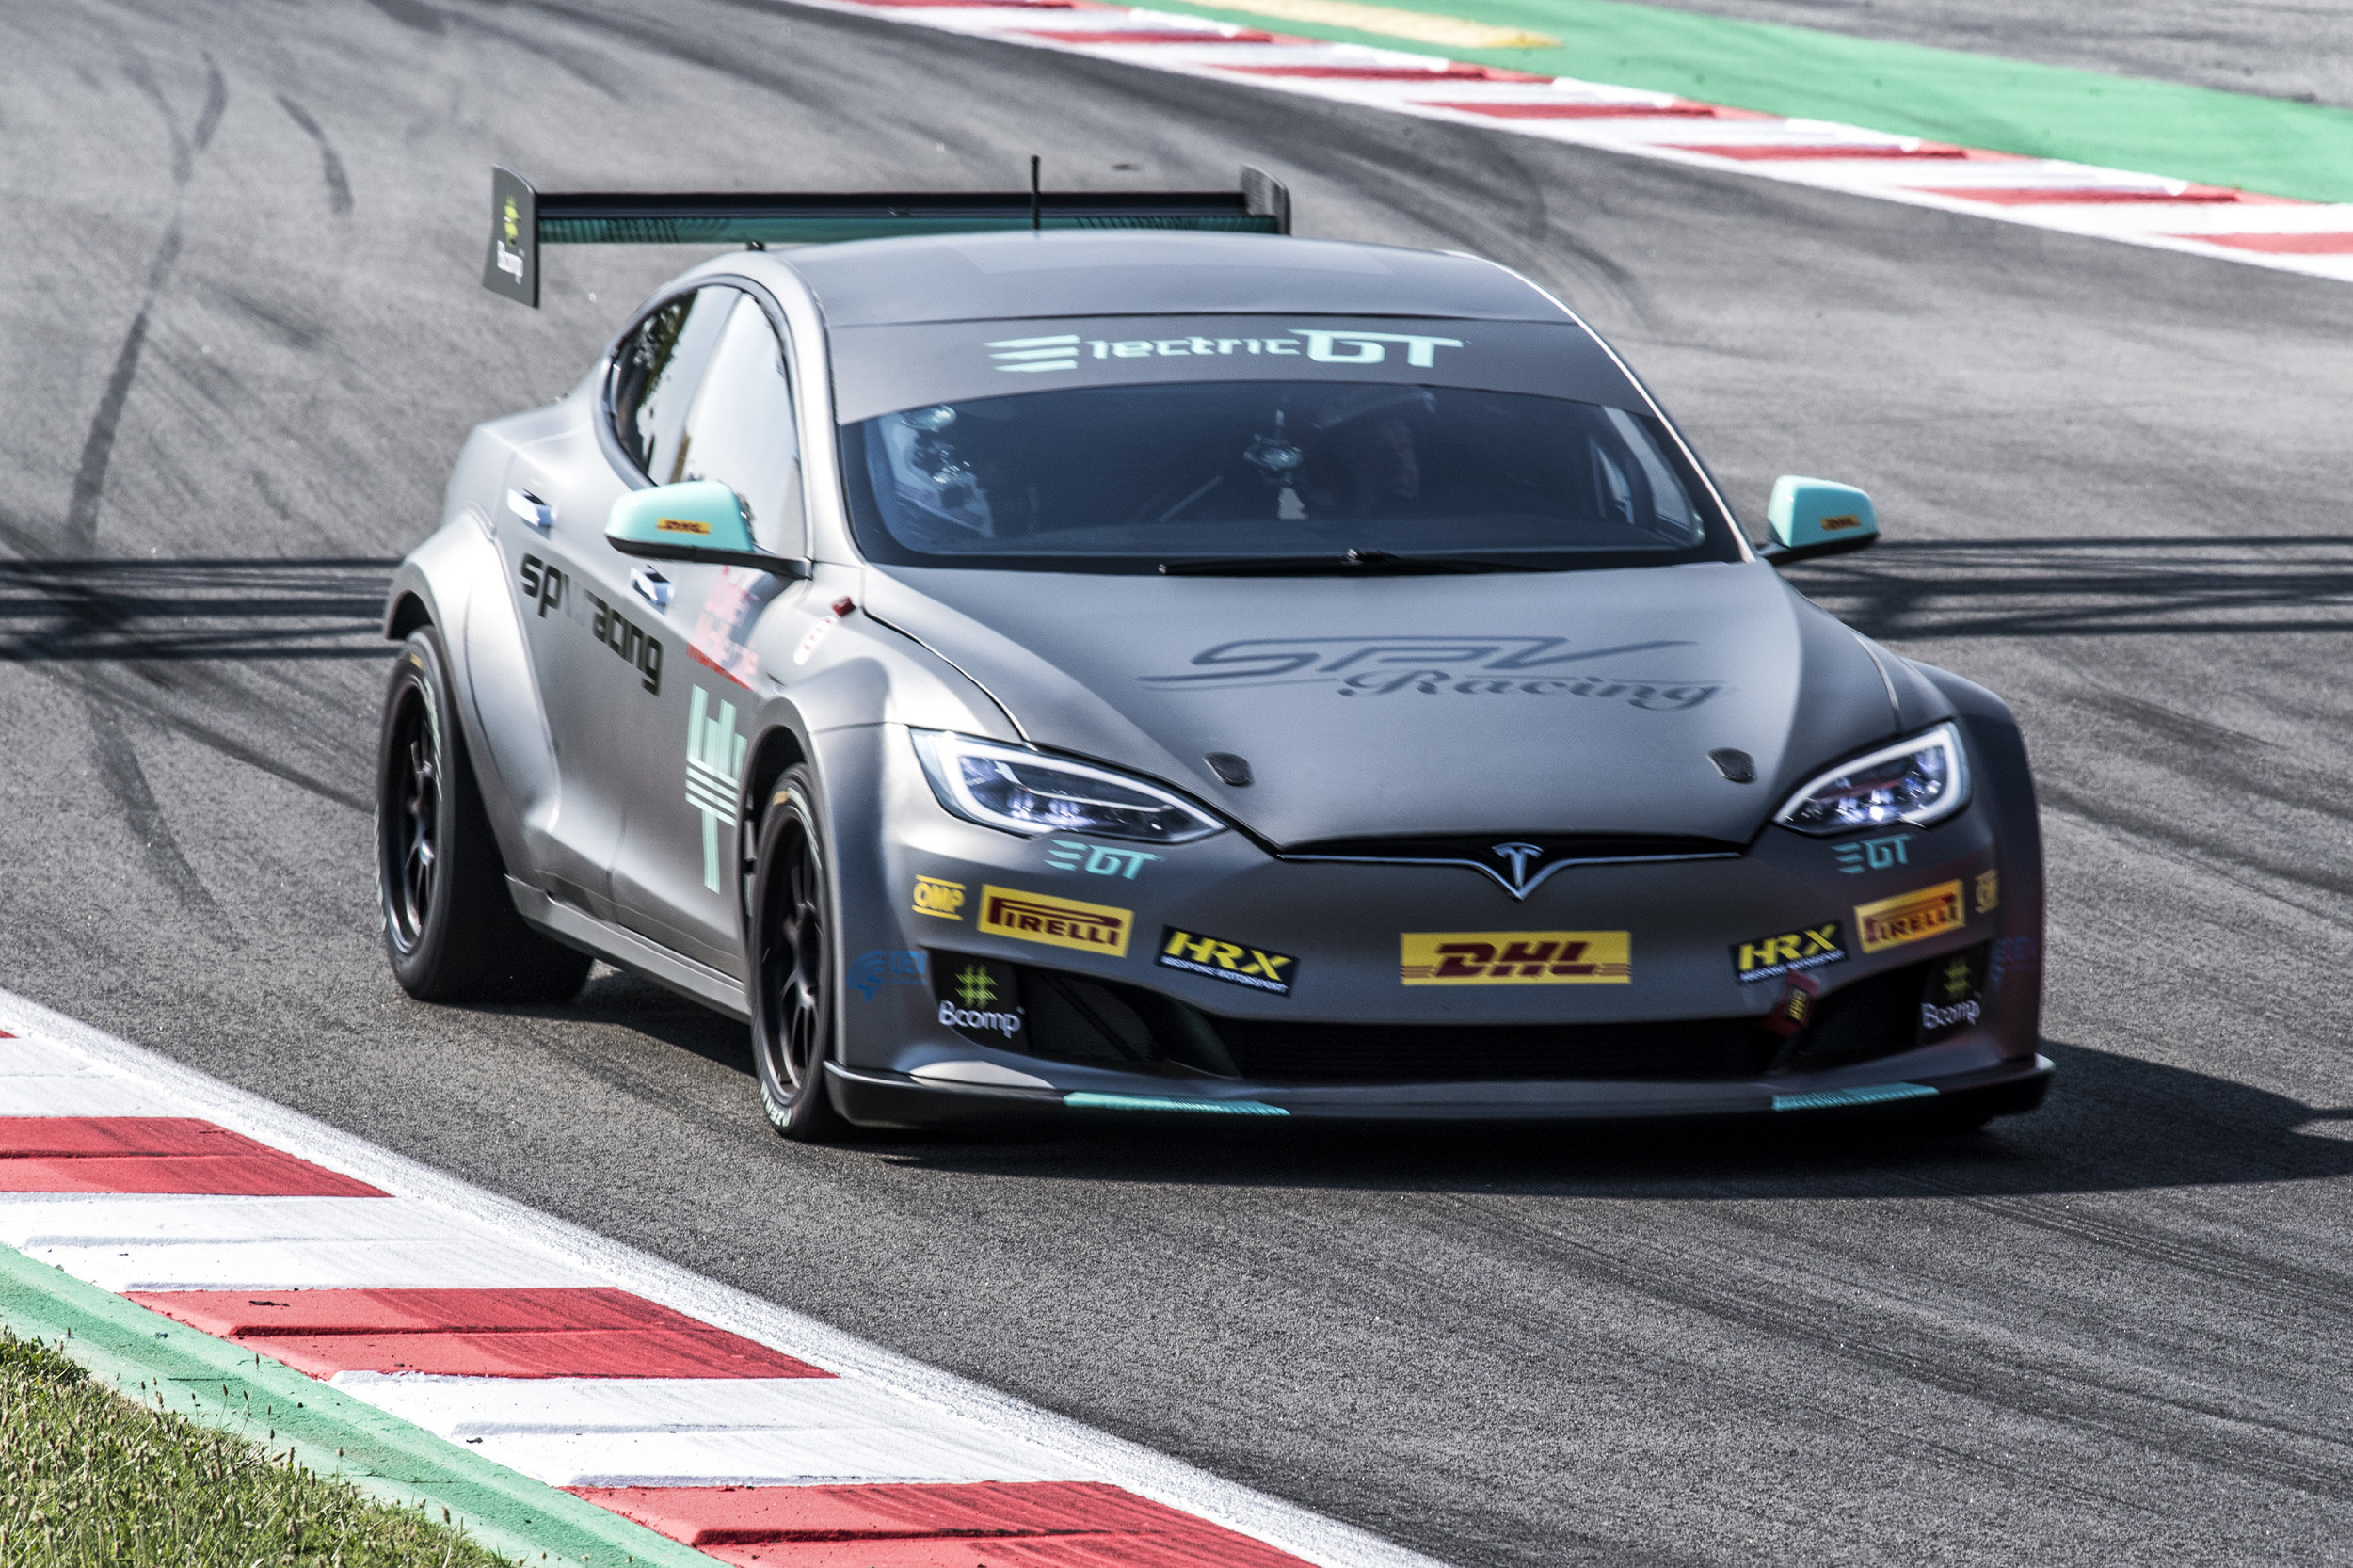 ELECTRIC GT'S TESLA P100D MAKES GLOBAL DEBUT IN BARCELONA   Electric GT Holdings Inc. and SPV Racing unveiled the race-ready version of the EPCS V2.3 Tesla P100DL in Barcelona.  Read More